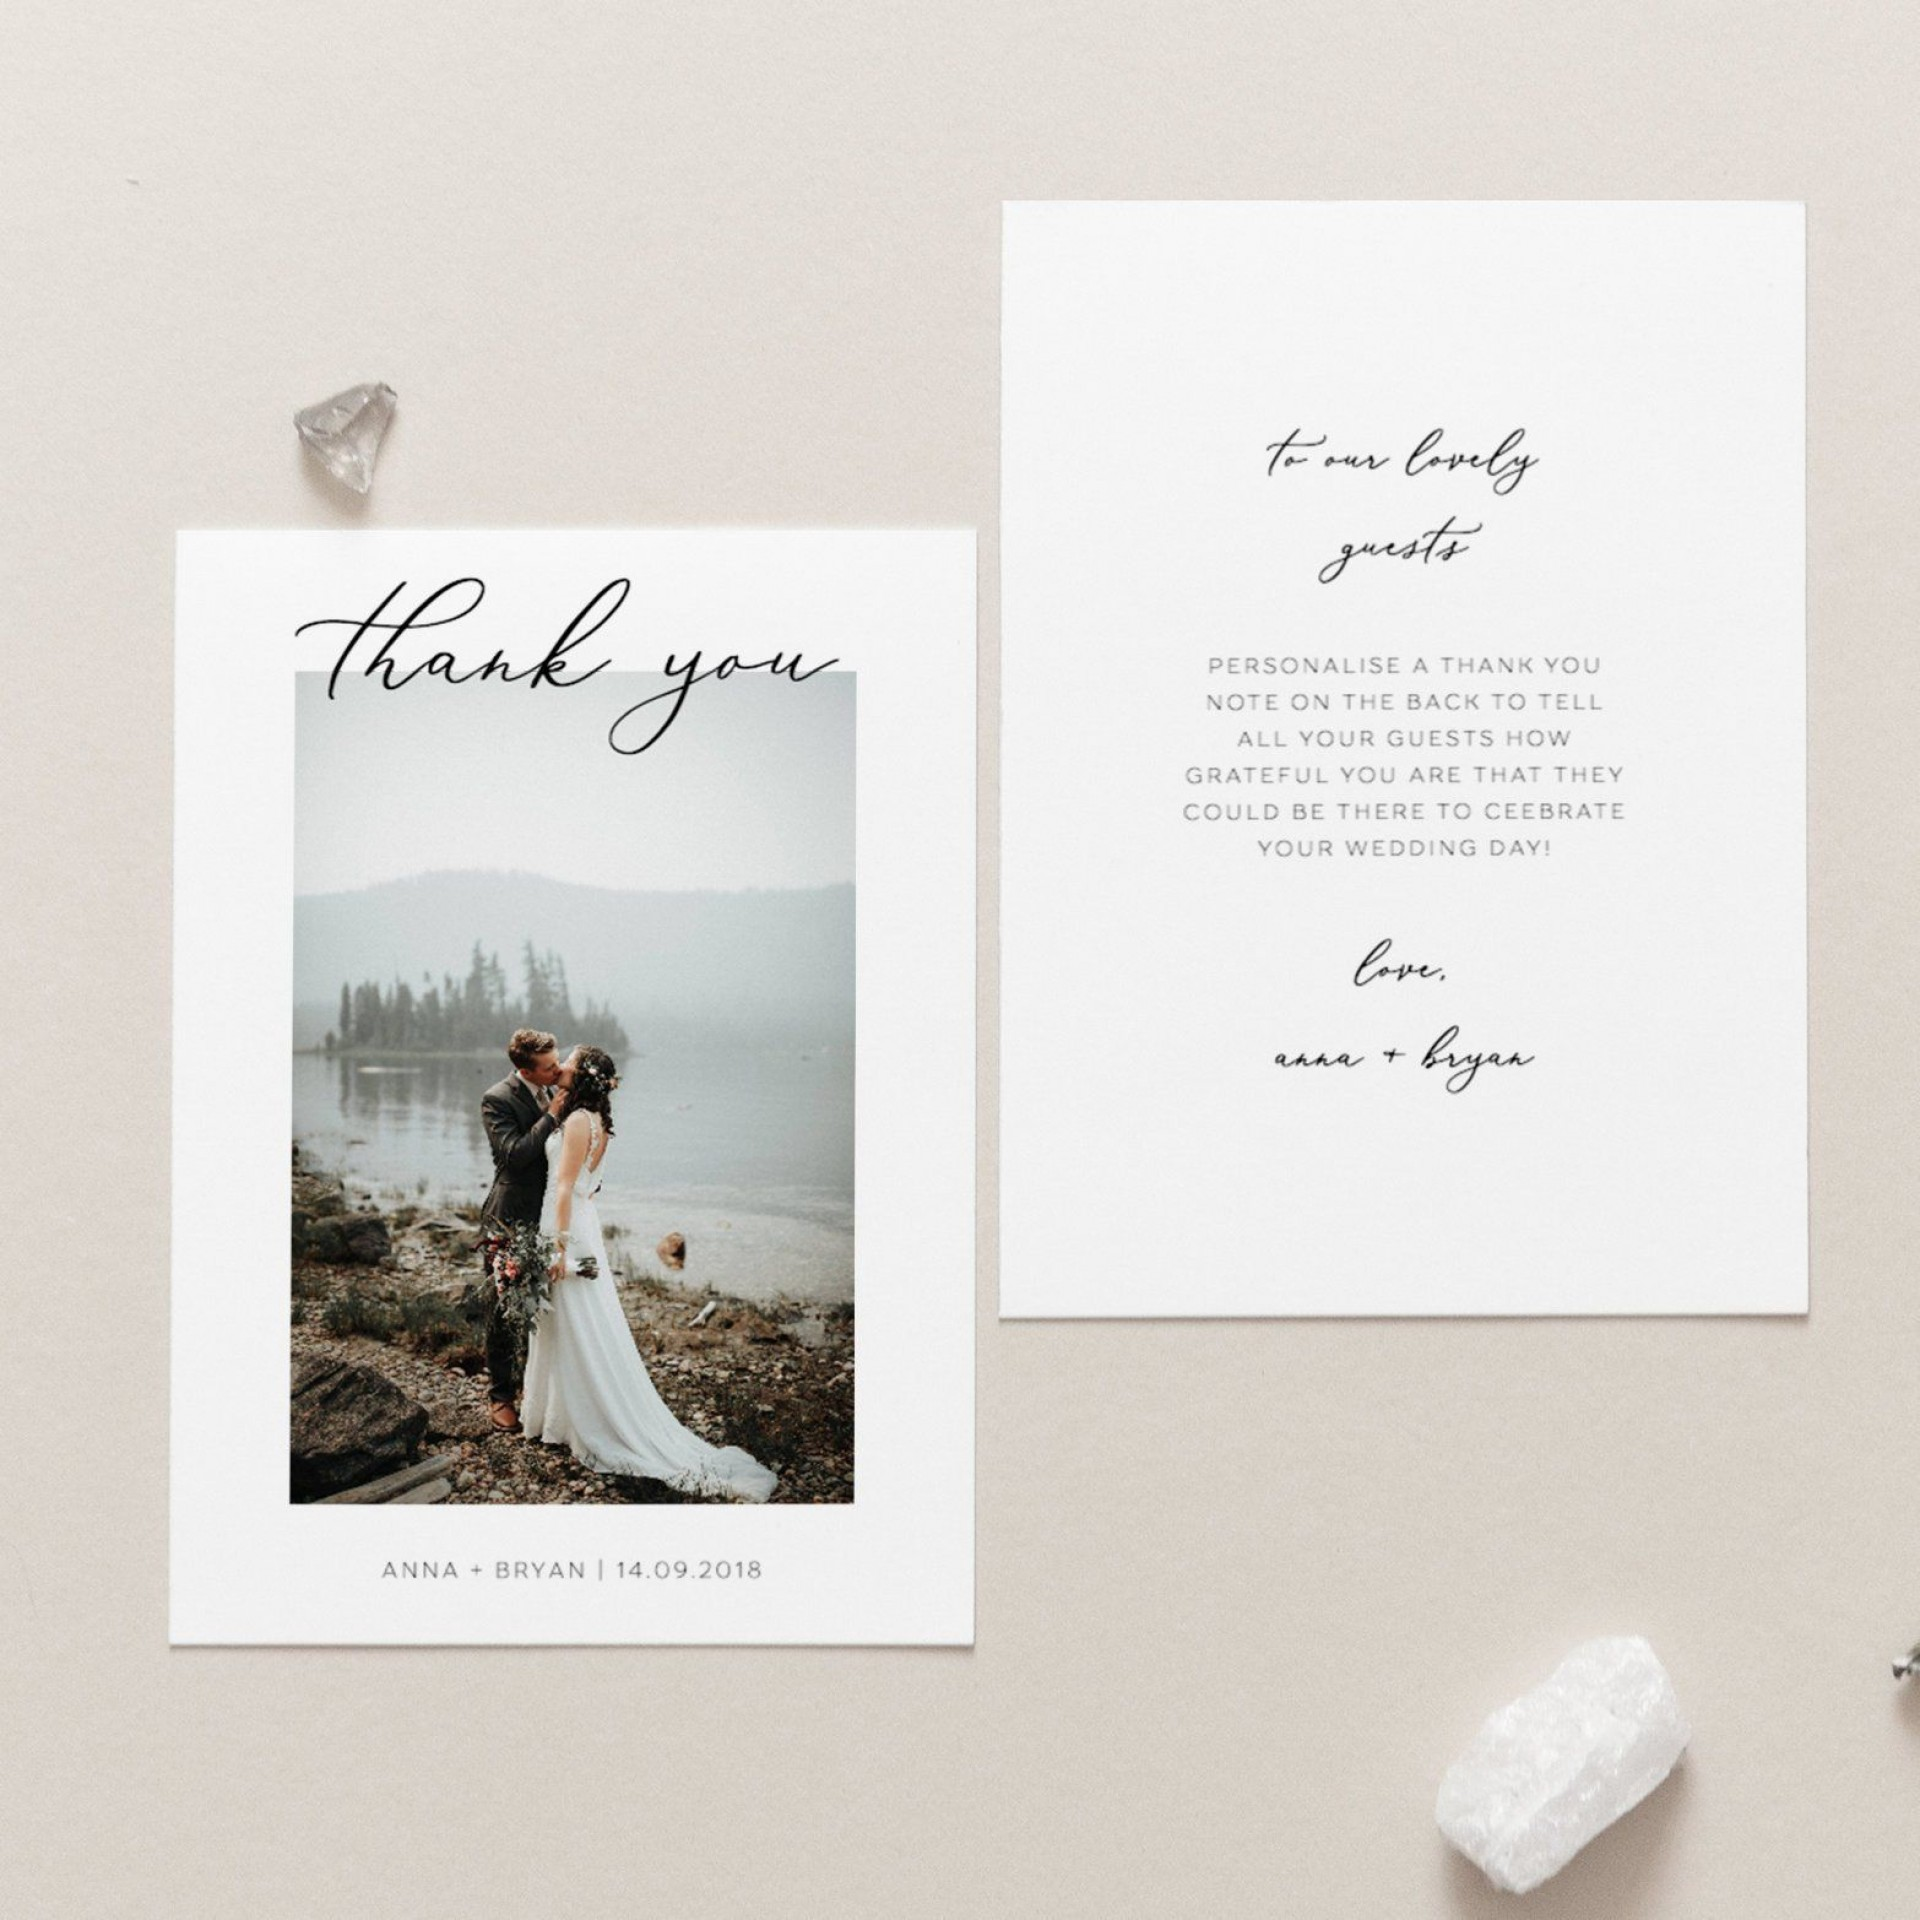 007 Formidable Thank You Note Template Wedding Design  Card Etsy Wording1920